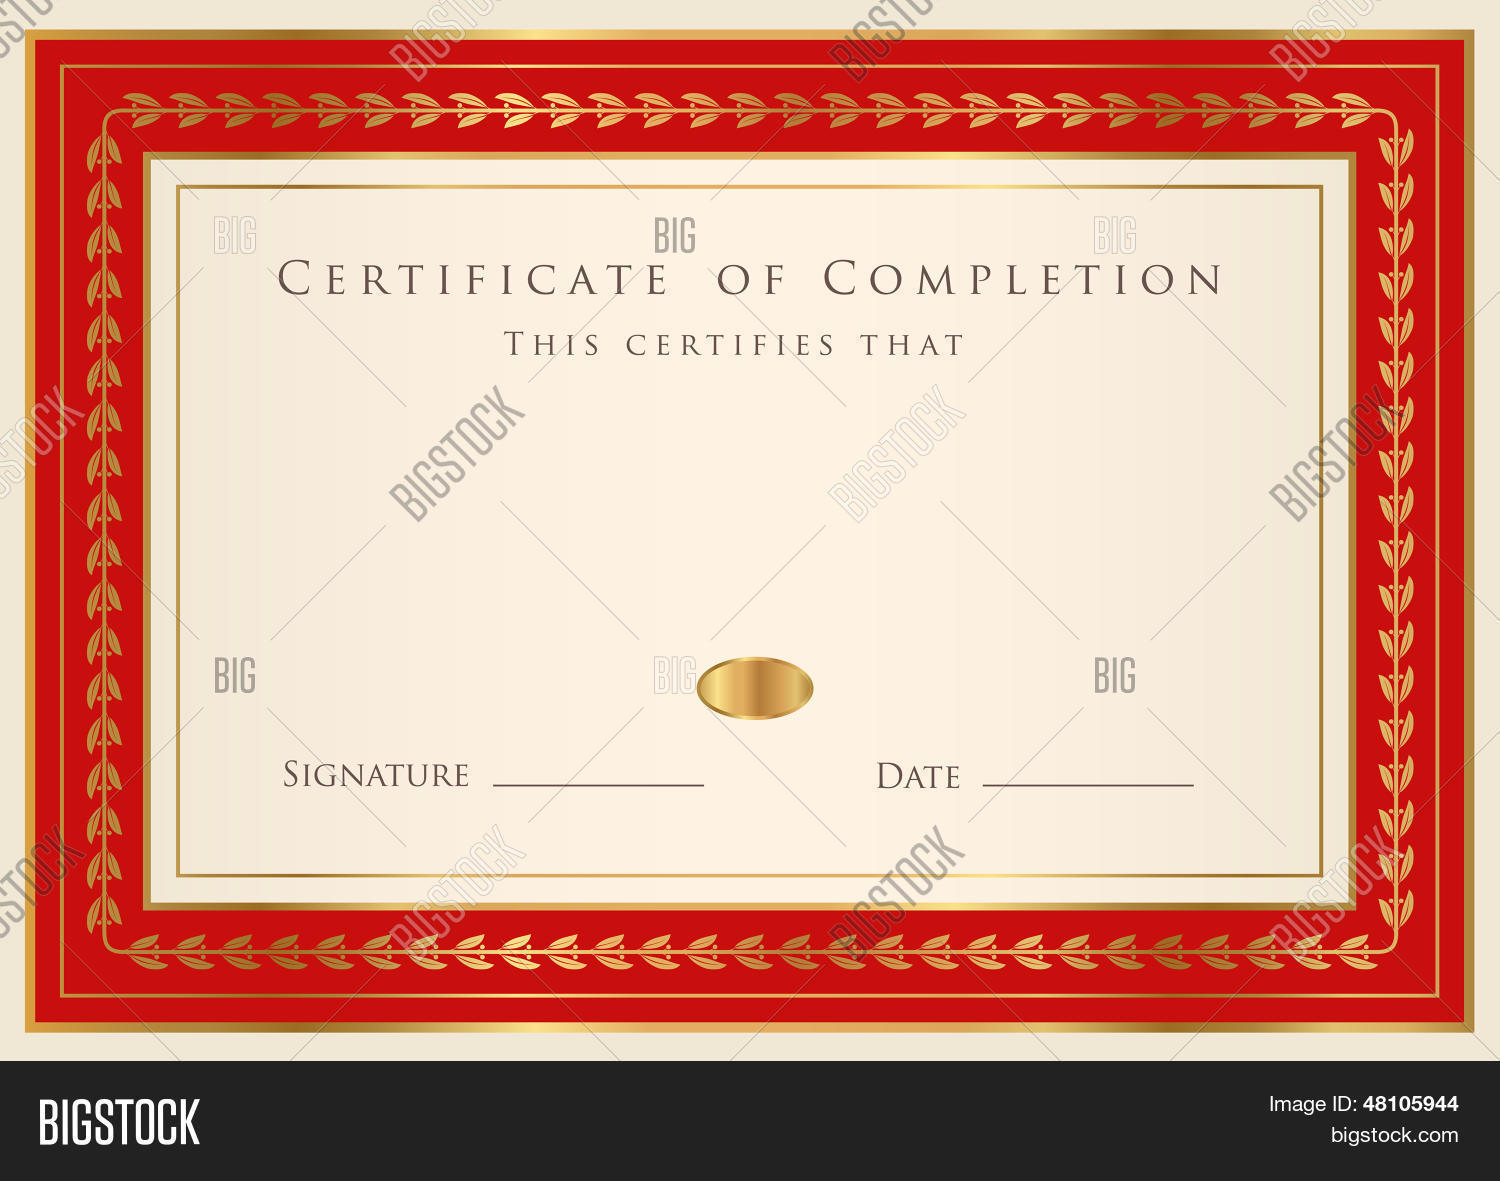 Blue certificate completion vector photo bigstock blue certificate of completion template or sample background with golden floral pattern border yadclub